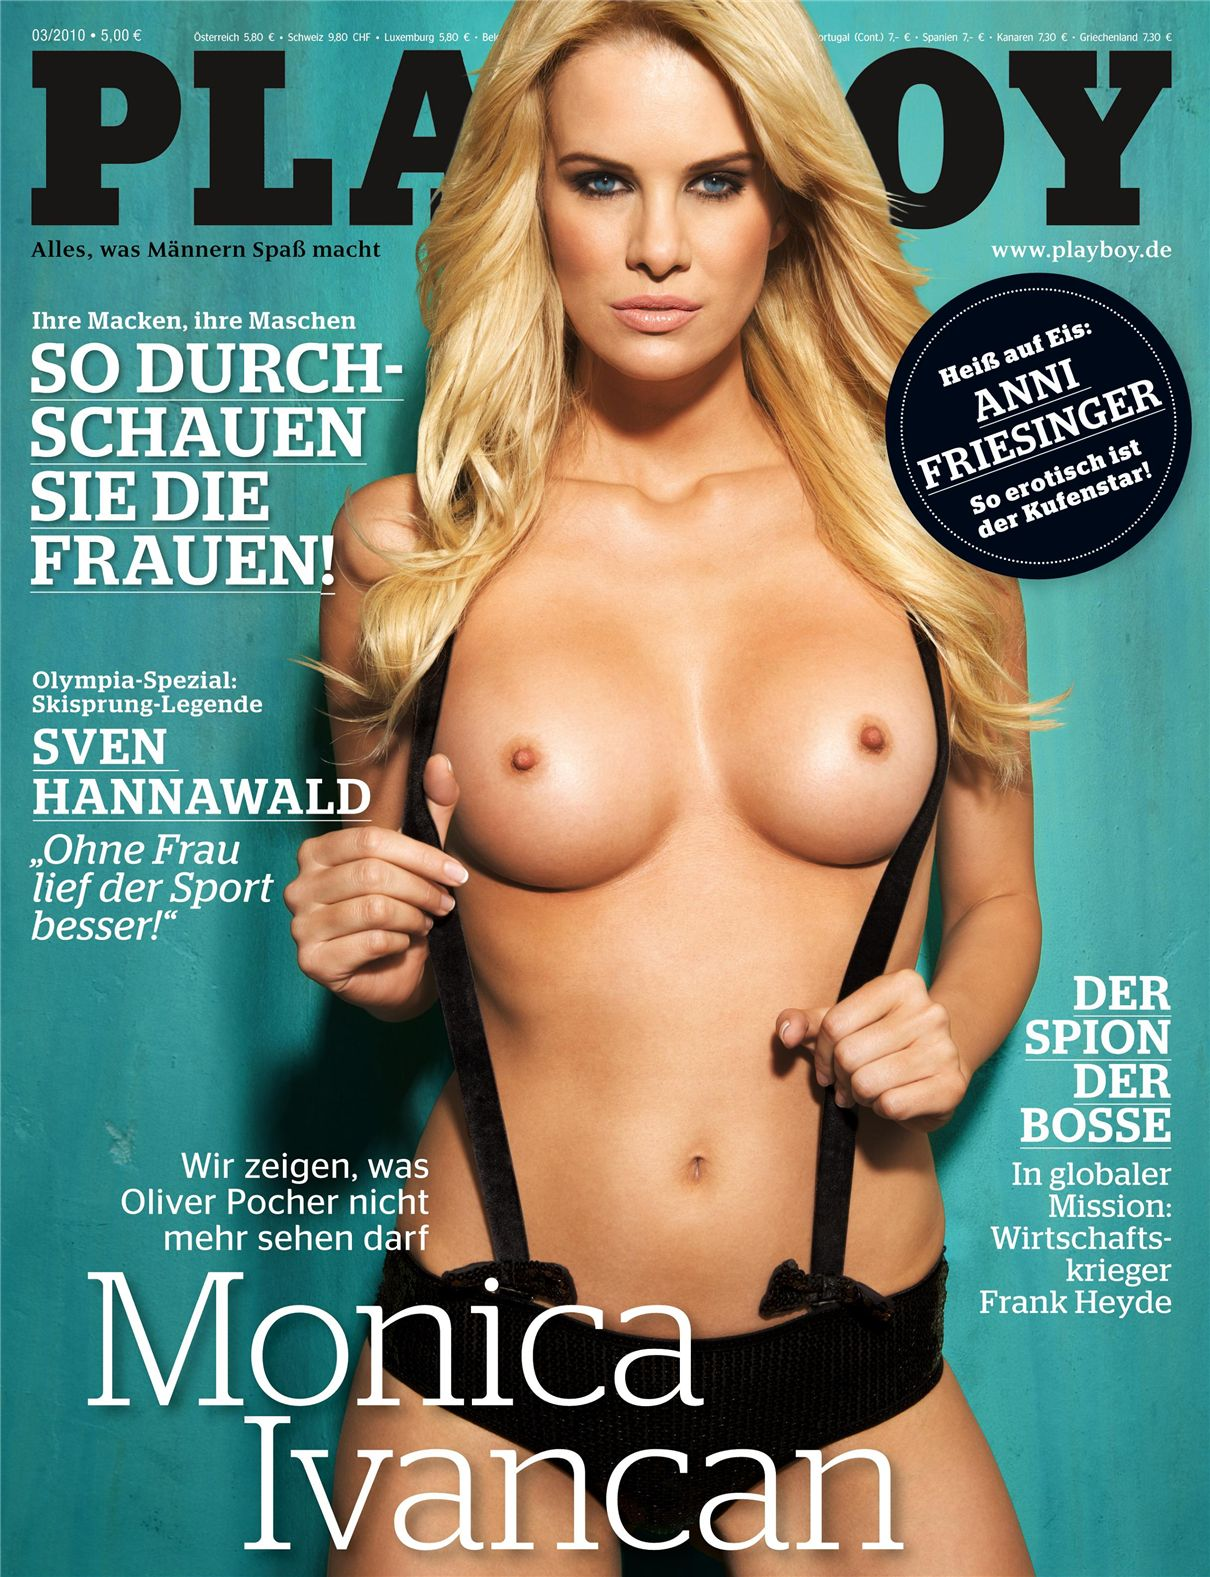 Monica Ivancan in Playboy Germany 03-2010